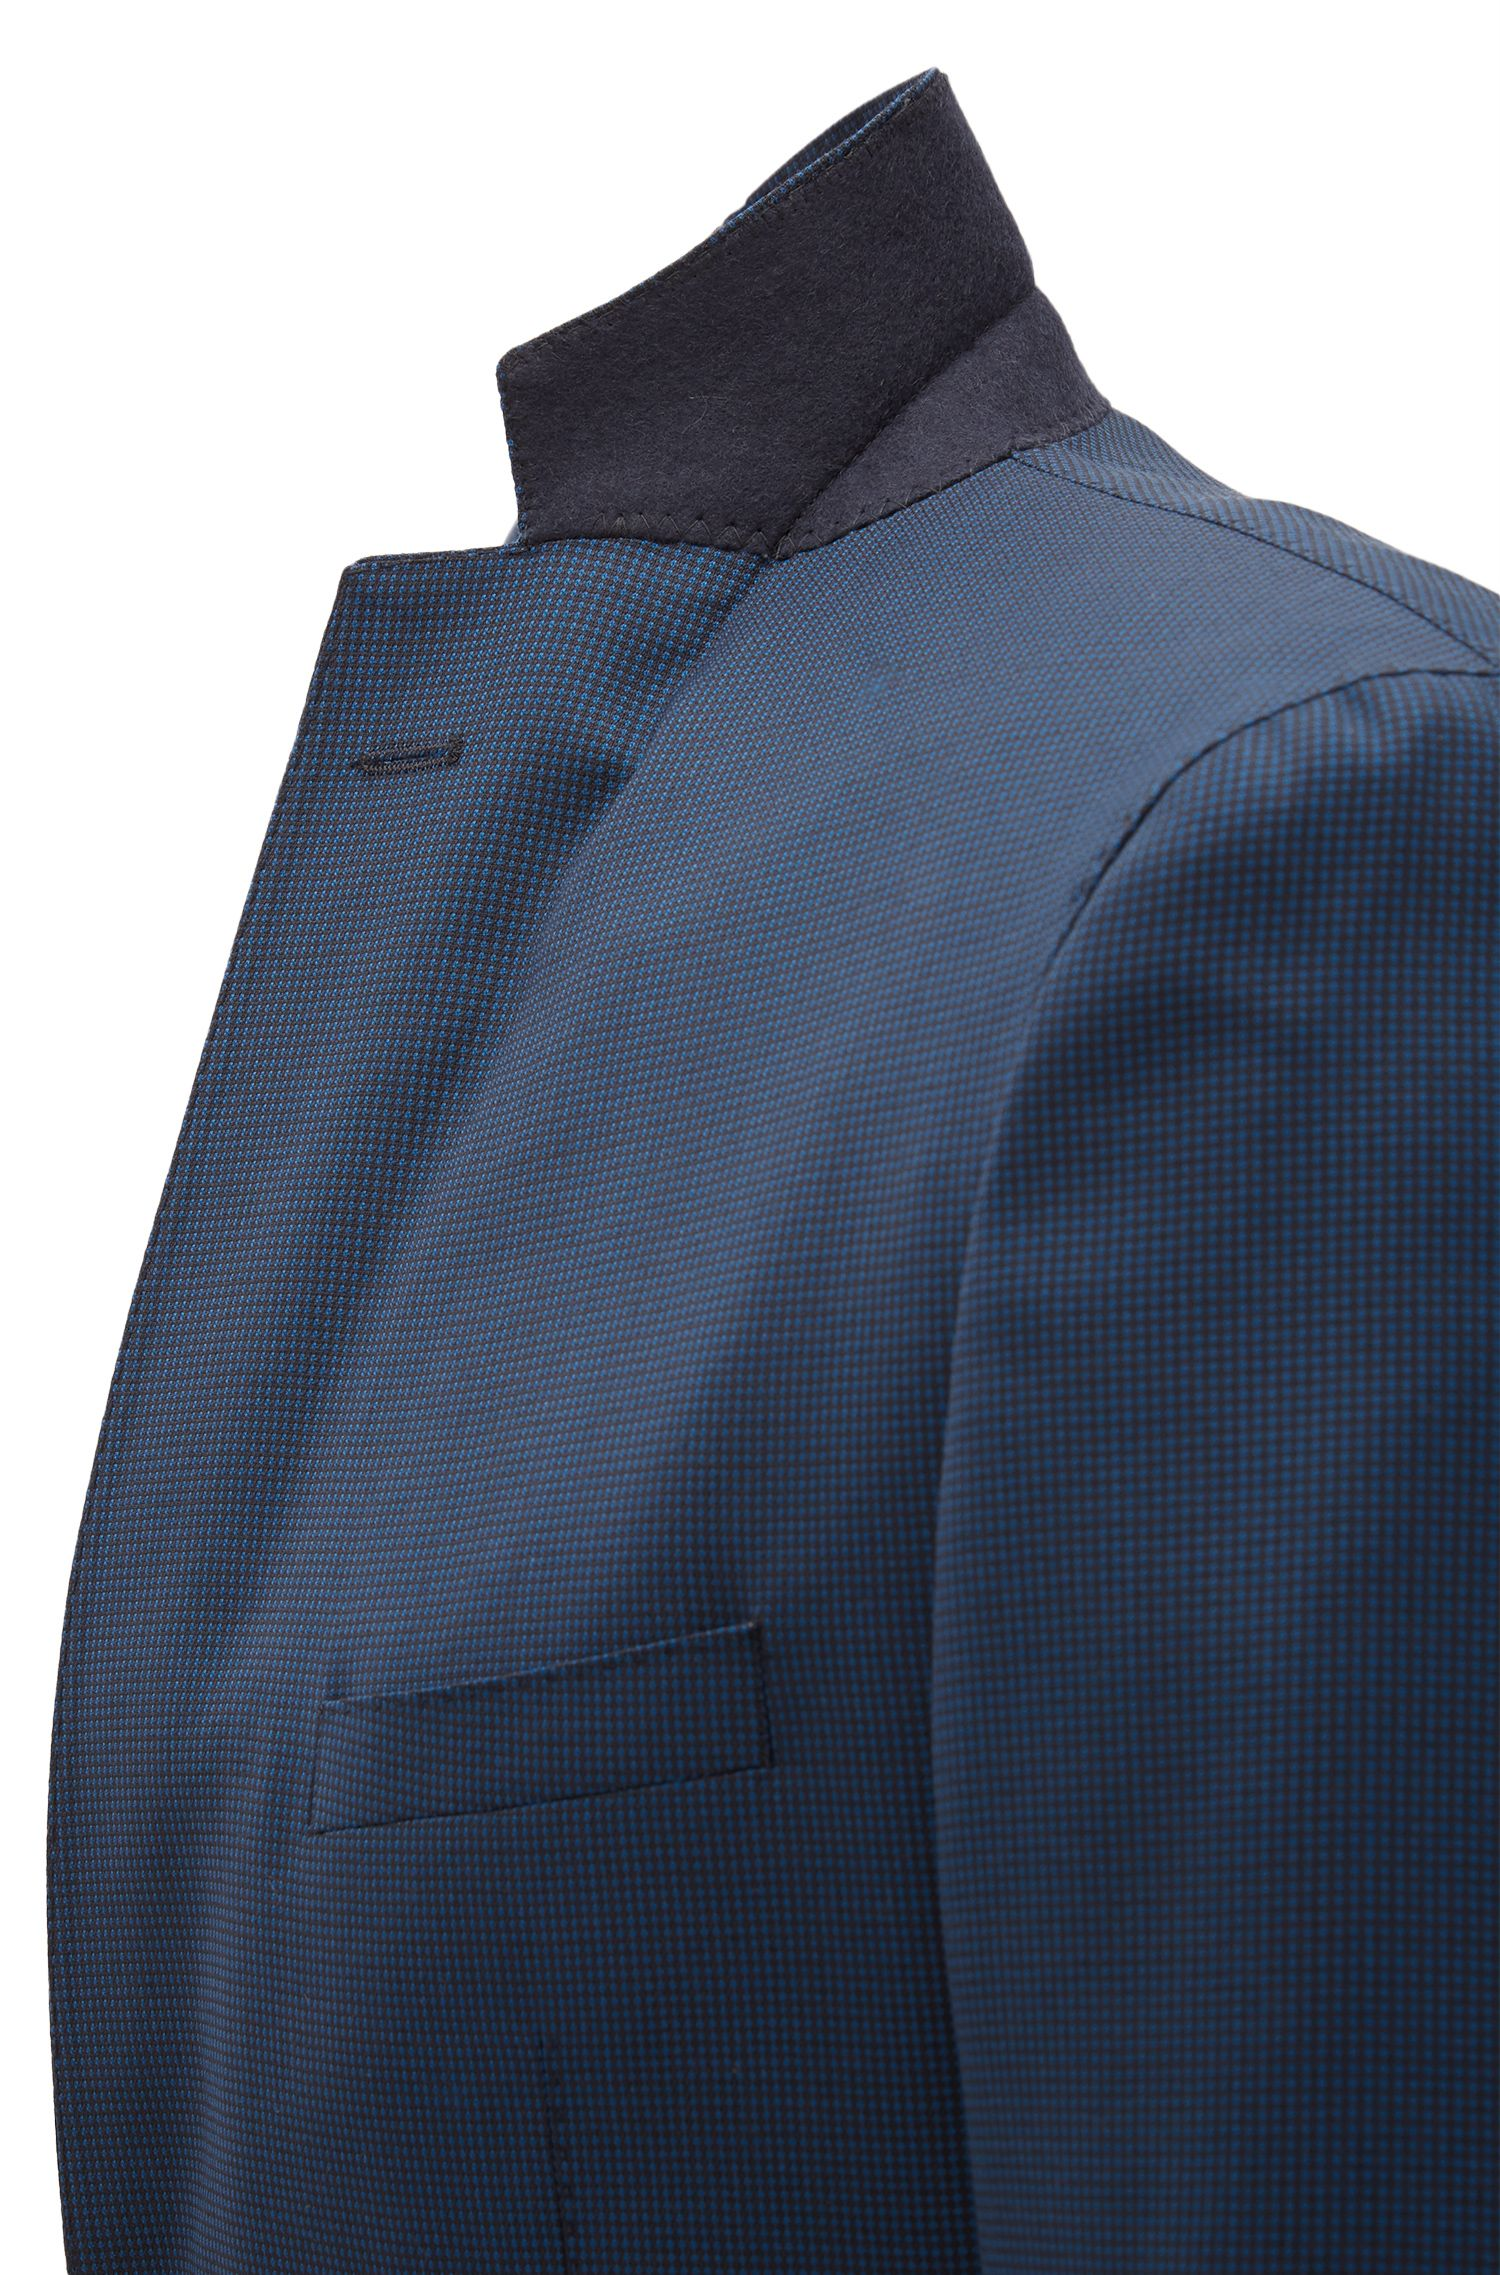 Italian Super 100 Wool Suit, Extra Slim Fit | Reyno/Wave, Blue